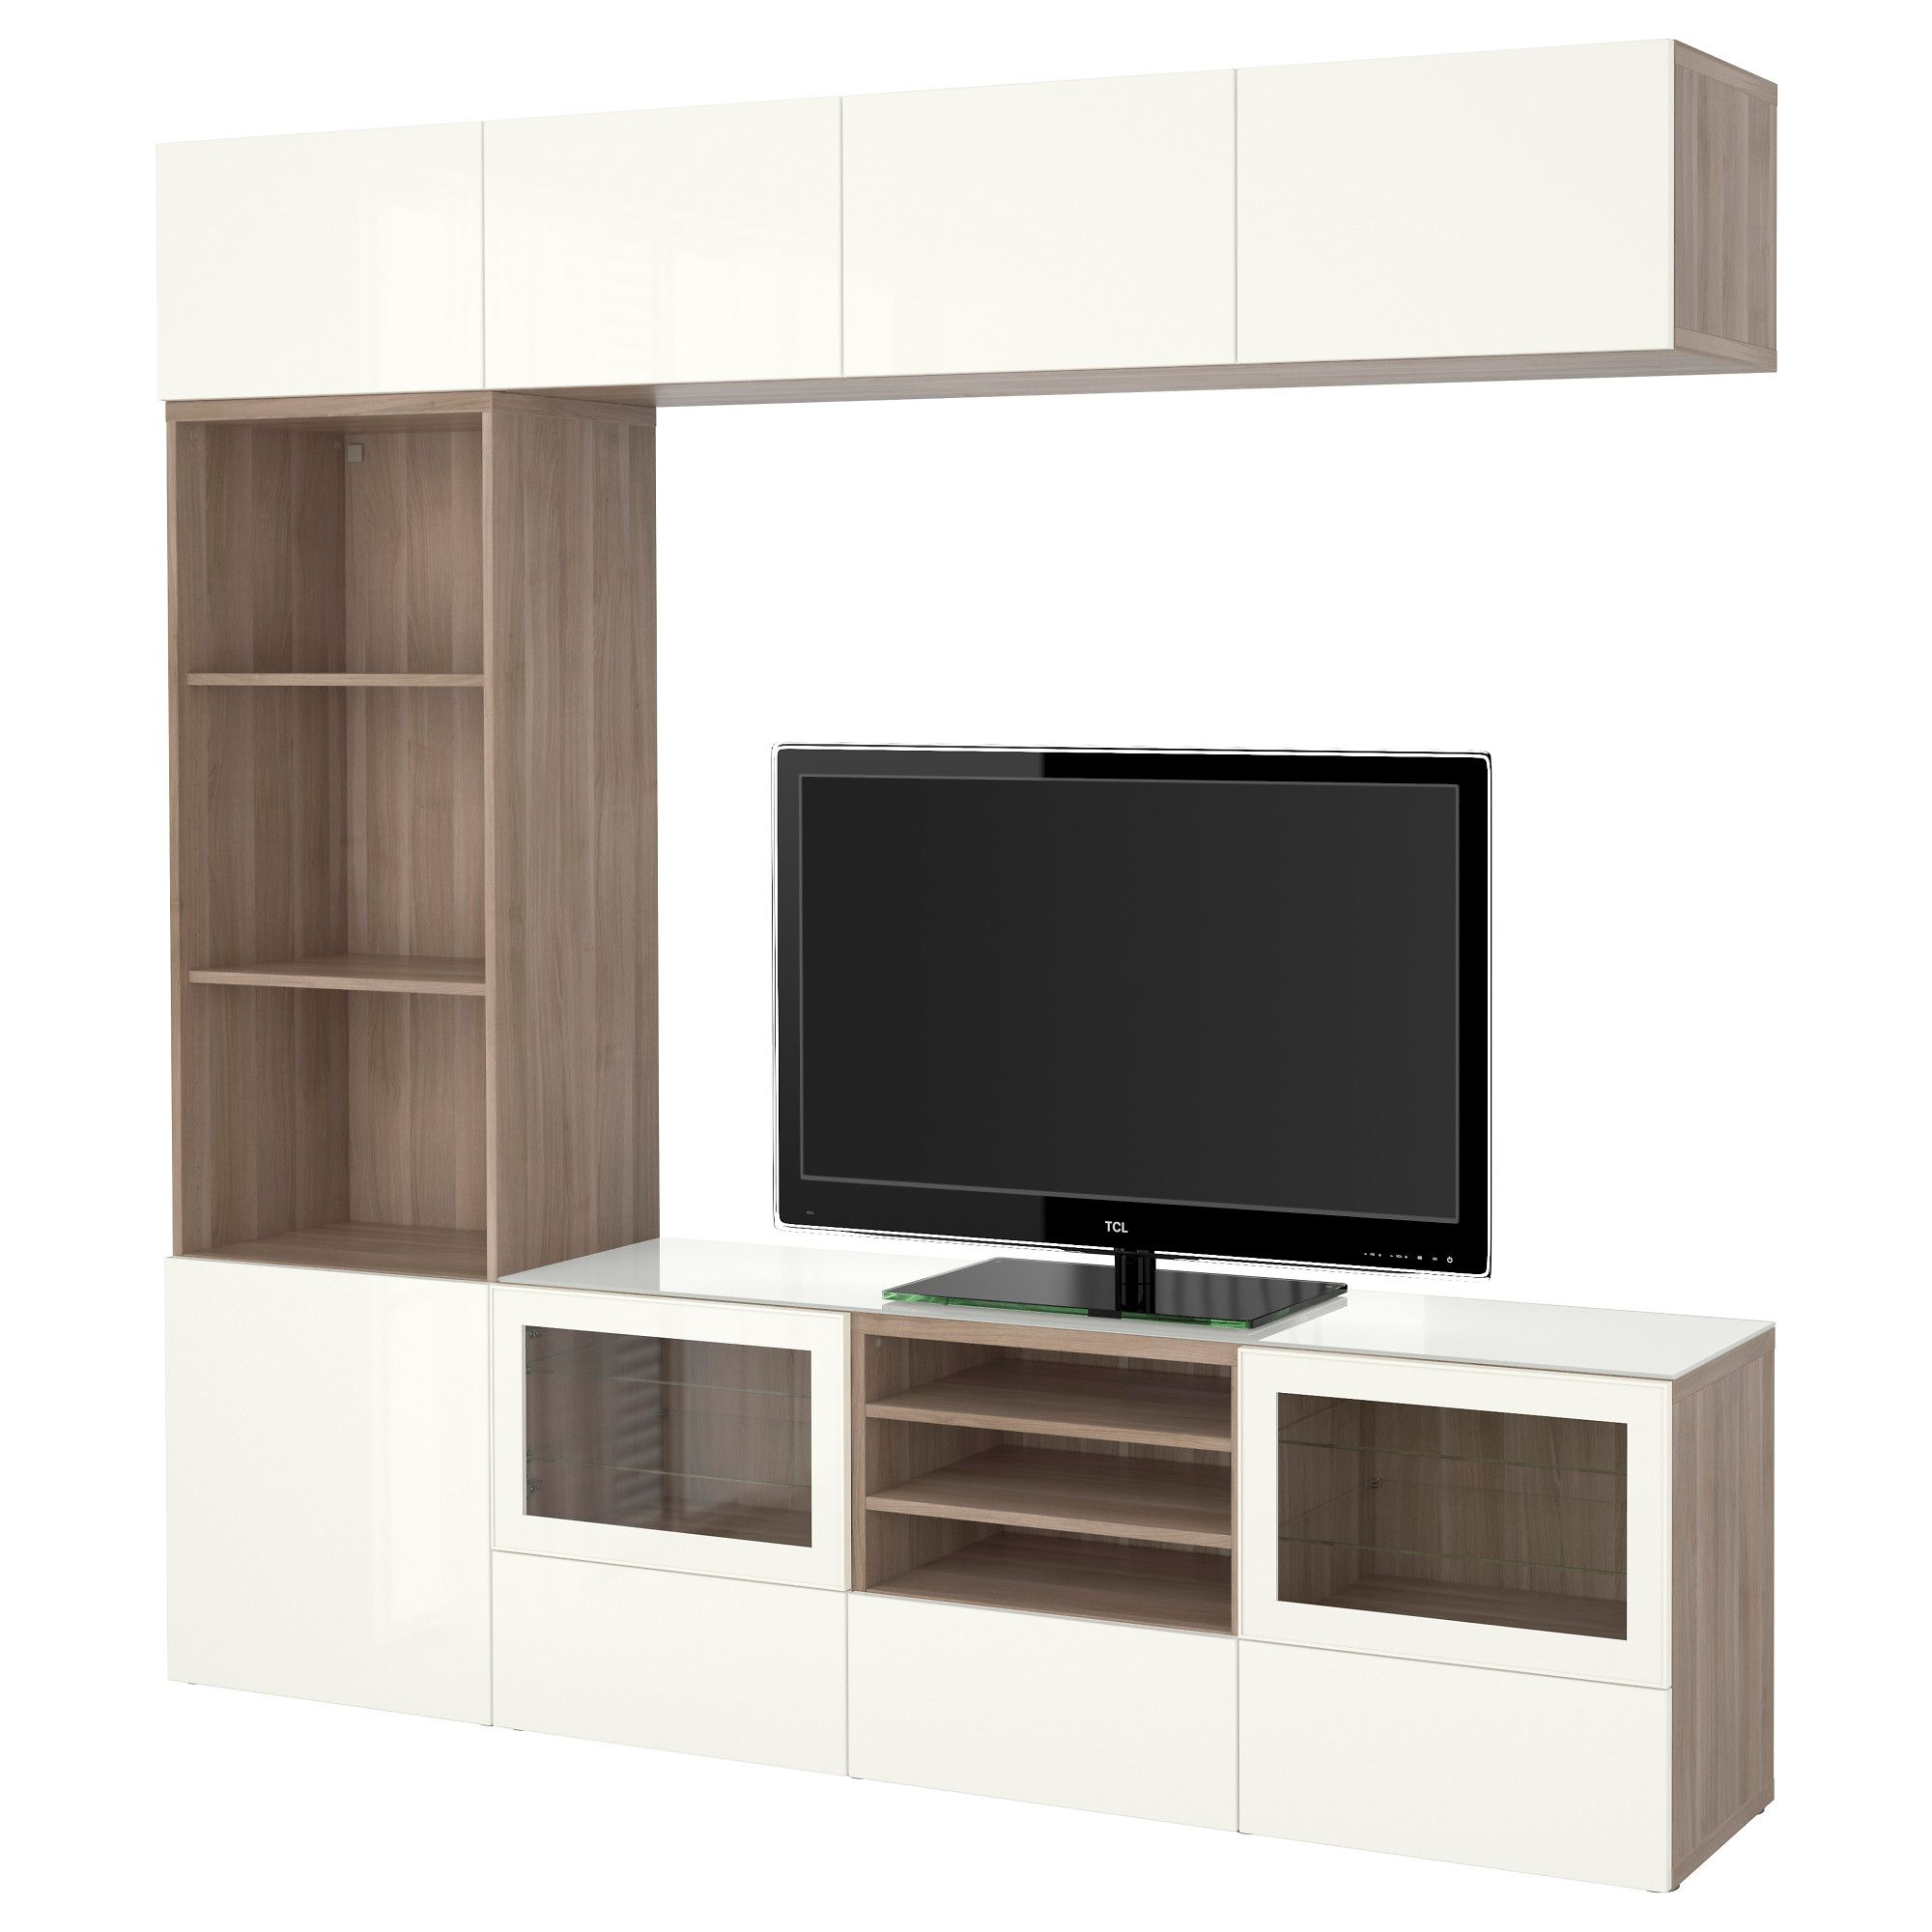 best tv komb mit vitrinent ren grau las nussbaumnachb jetzt bestellen unter https. Black Bedroom Furniture Sets. Home Design Ideas